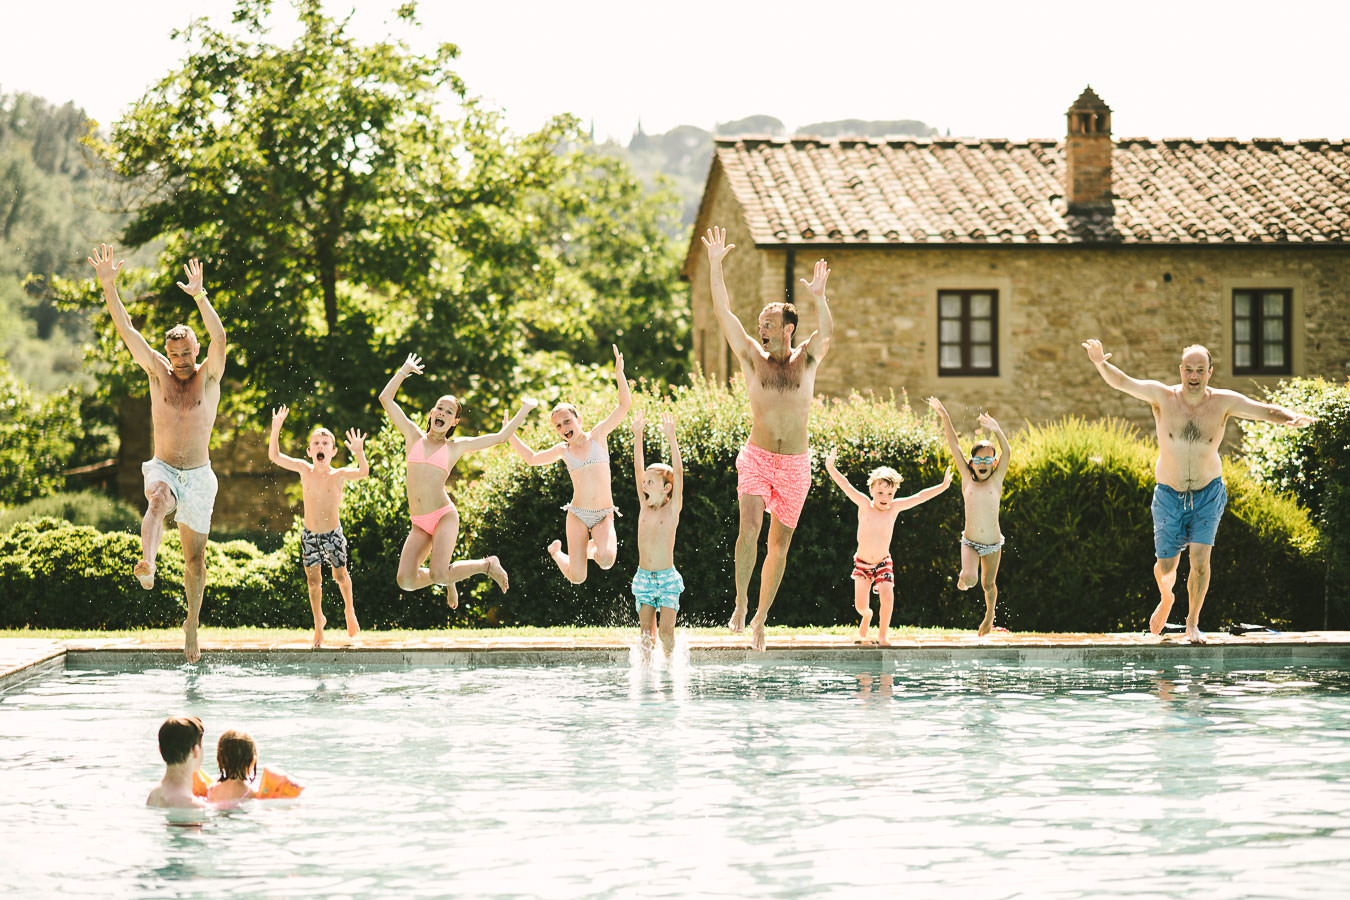 Family vacation photo shoot in Tuscany countryside Val D'Orcia area